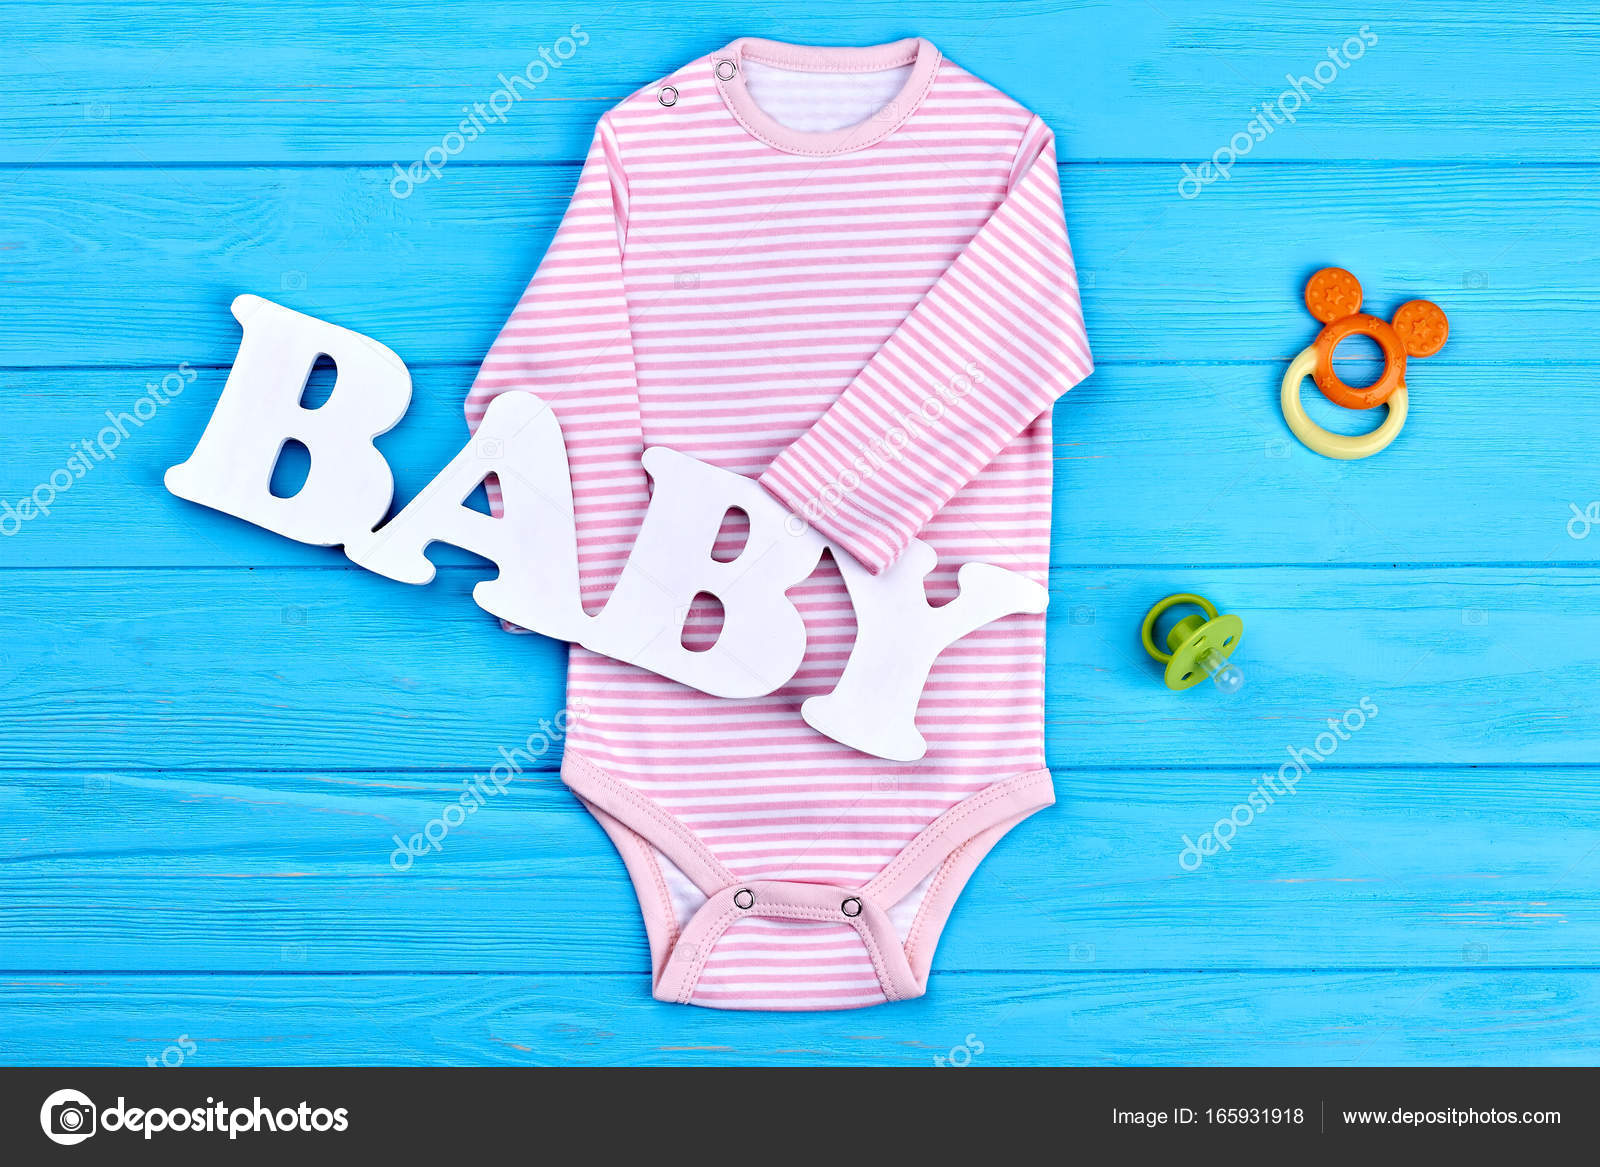 715d26eb0d3 High quality natural bodysuit for baby-girl. Infant baby striped cotton  bodysuit